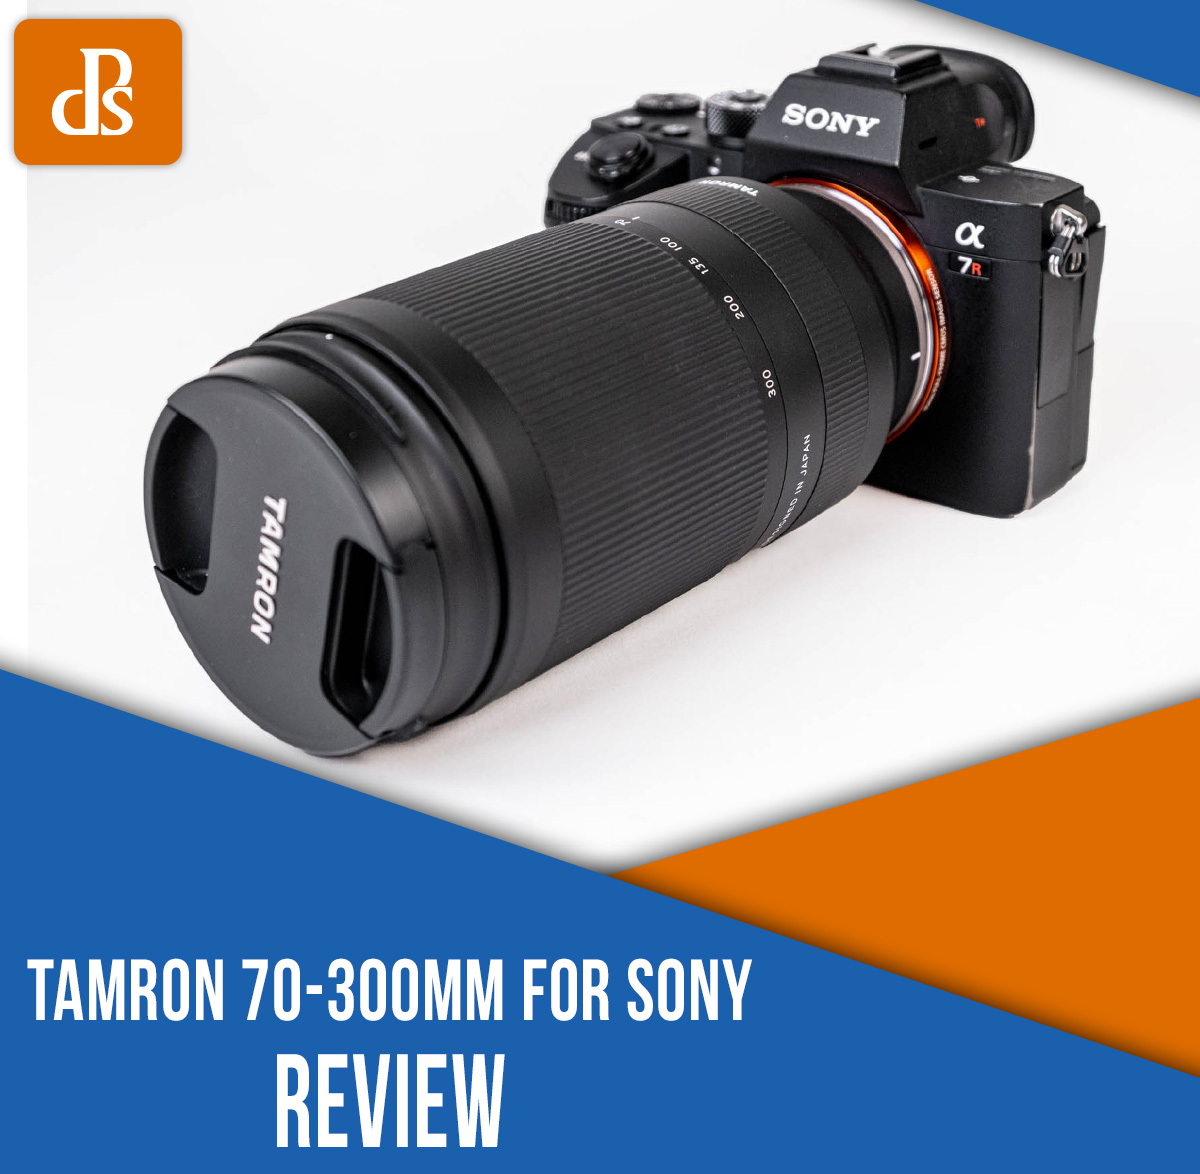 Tamron 70-300mm for Sony Review: A Compact, Well-Priced Telephoto Lens